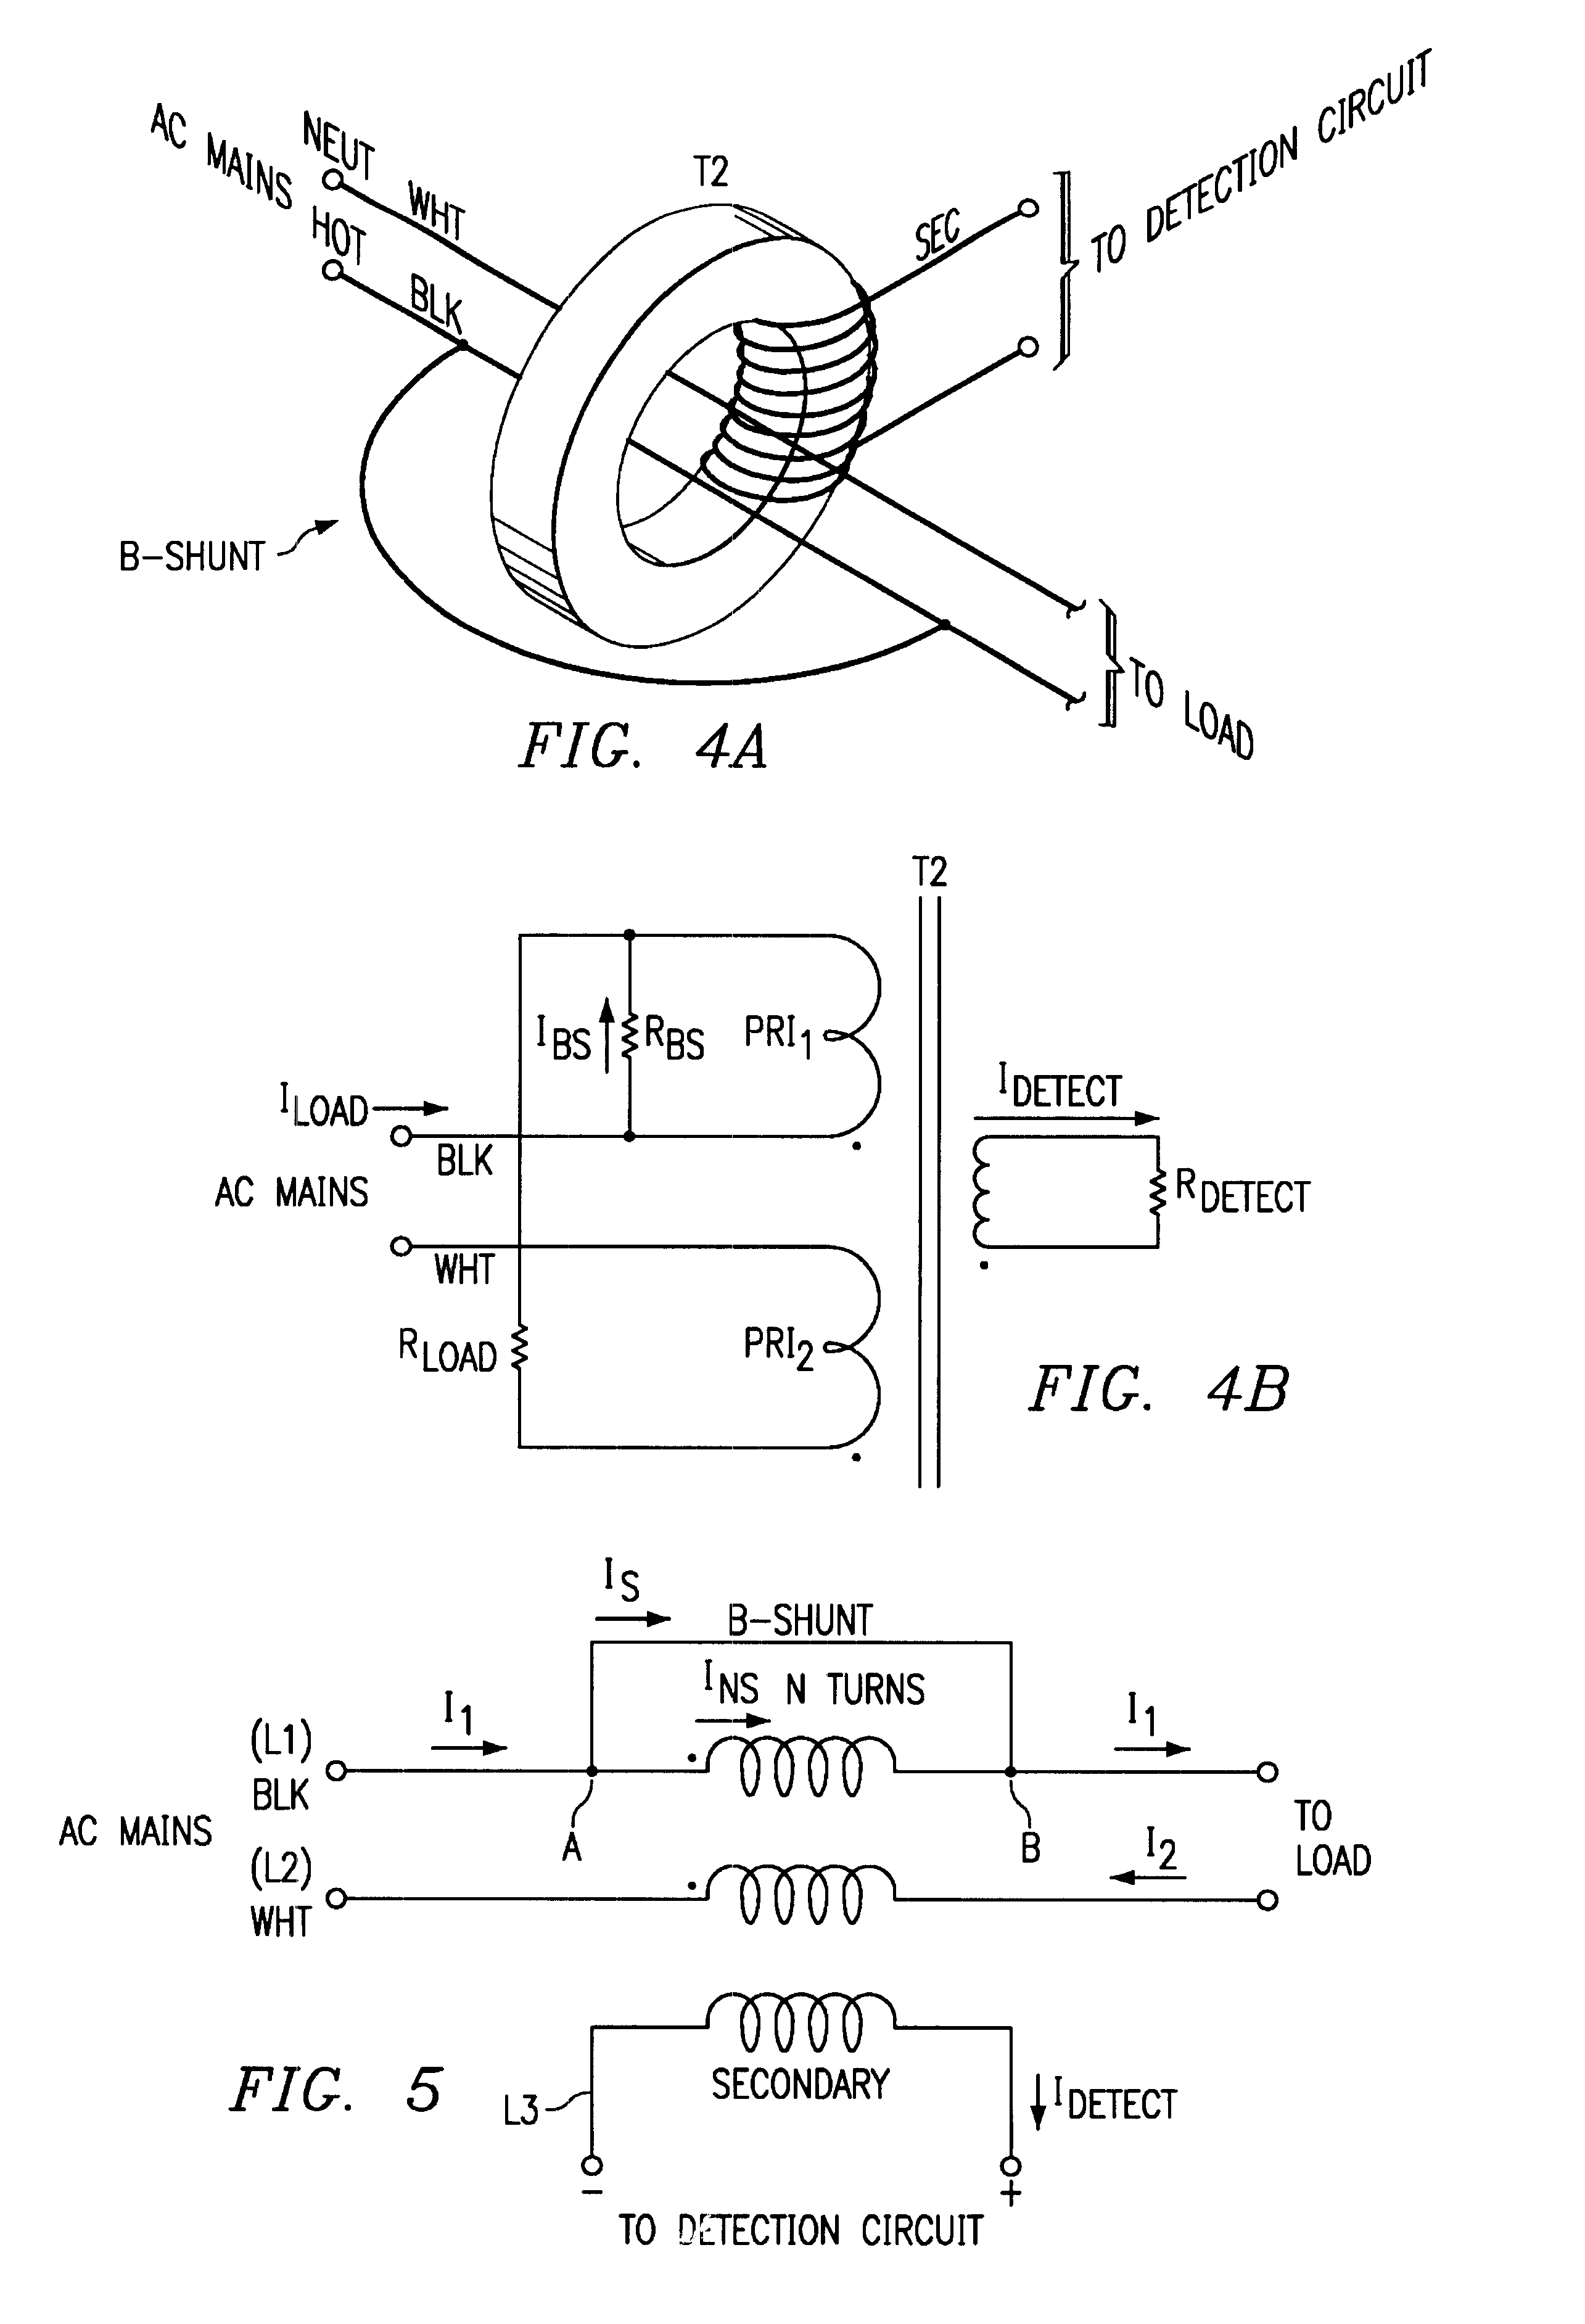 Afci Wiring Methods Diagrams Outlet Diagram Patent Us6426632 Method And Apparatus For Testing An Breaker